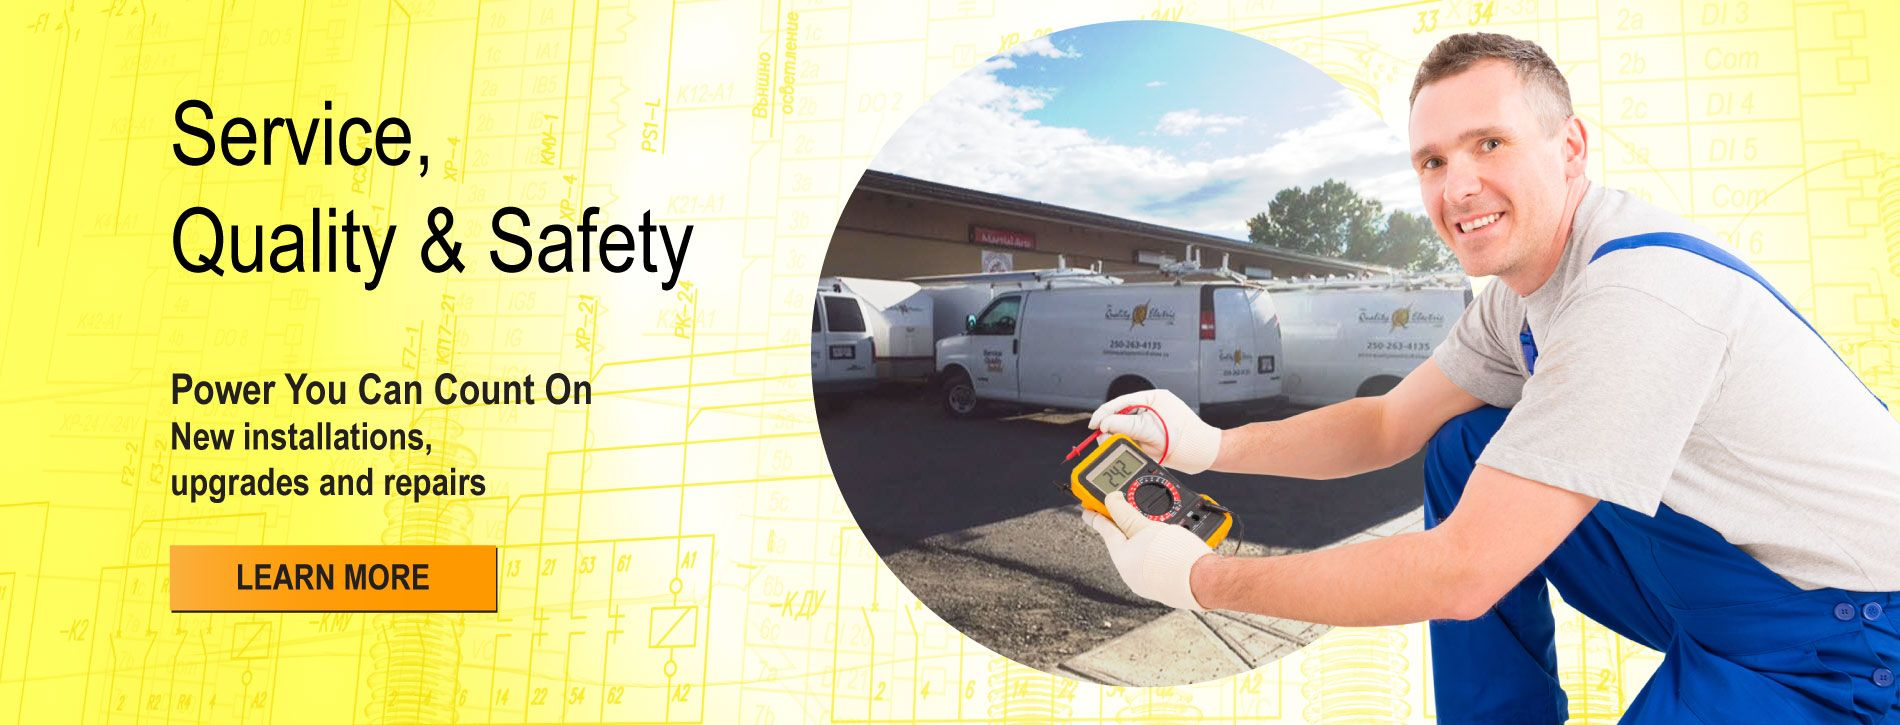 Service, Quality & Safety | Learn More